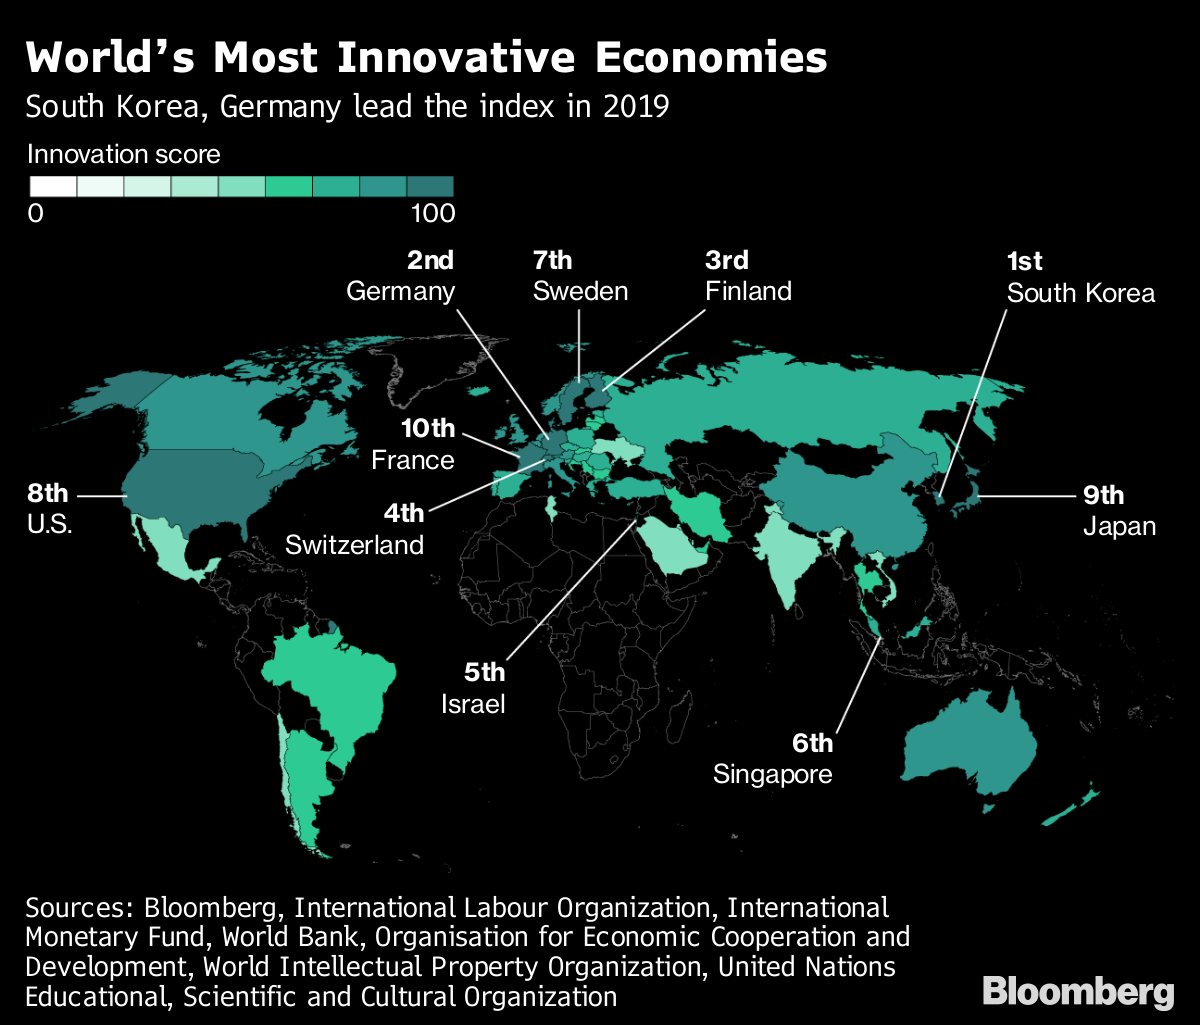 India at 54th position in the list of world's most innovative countries